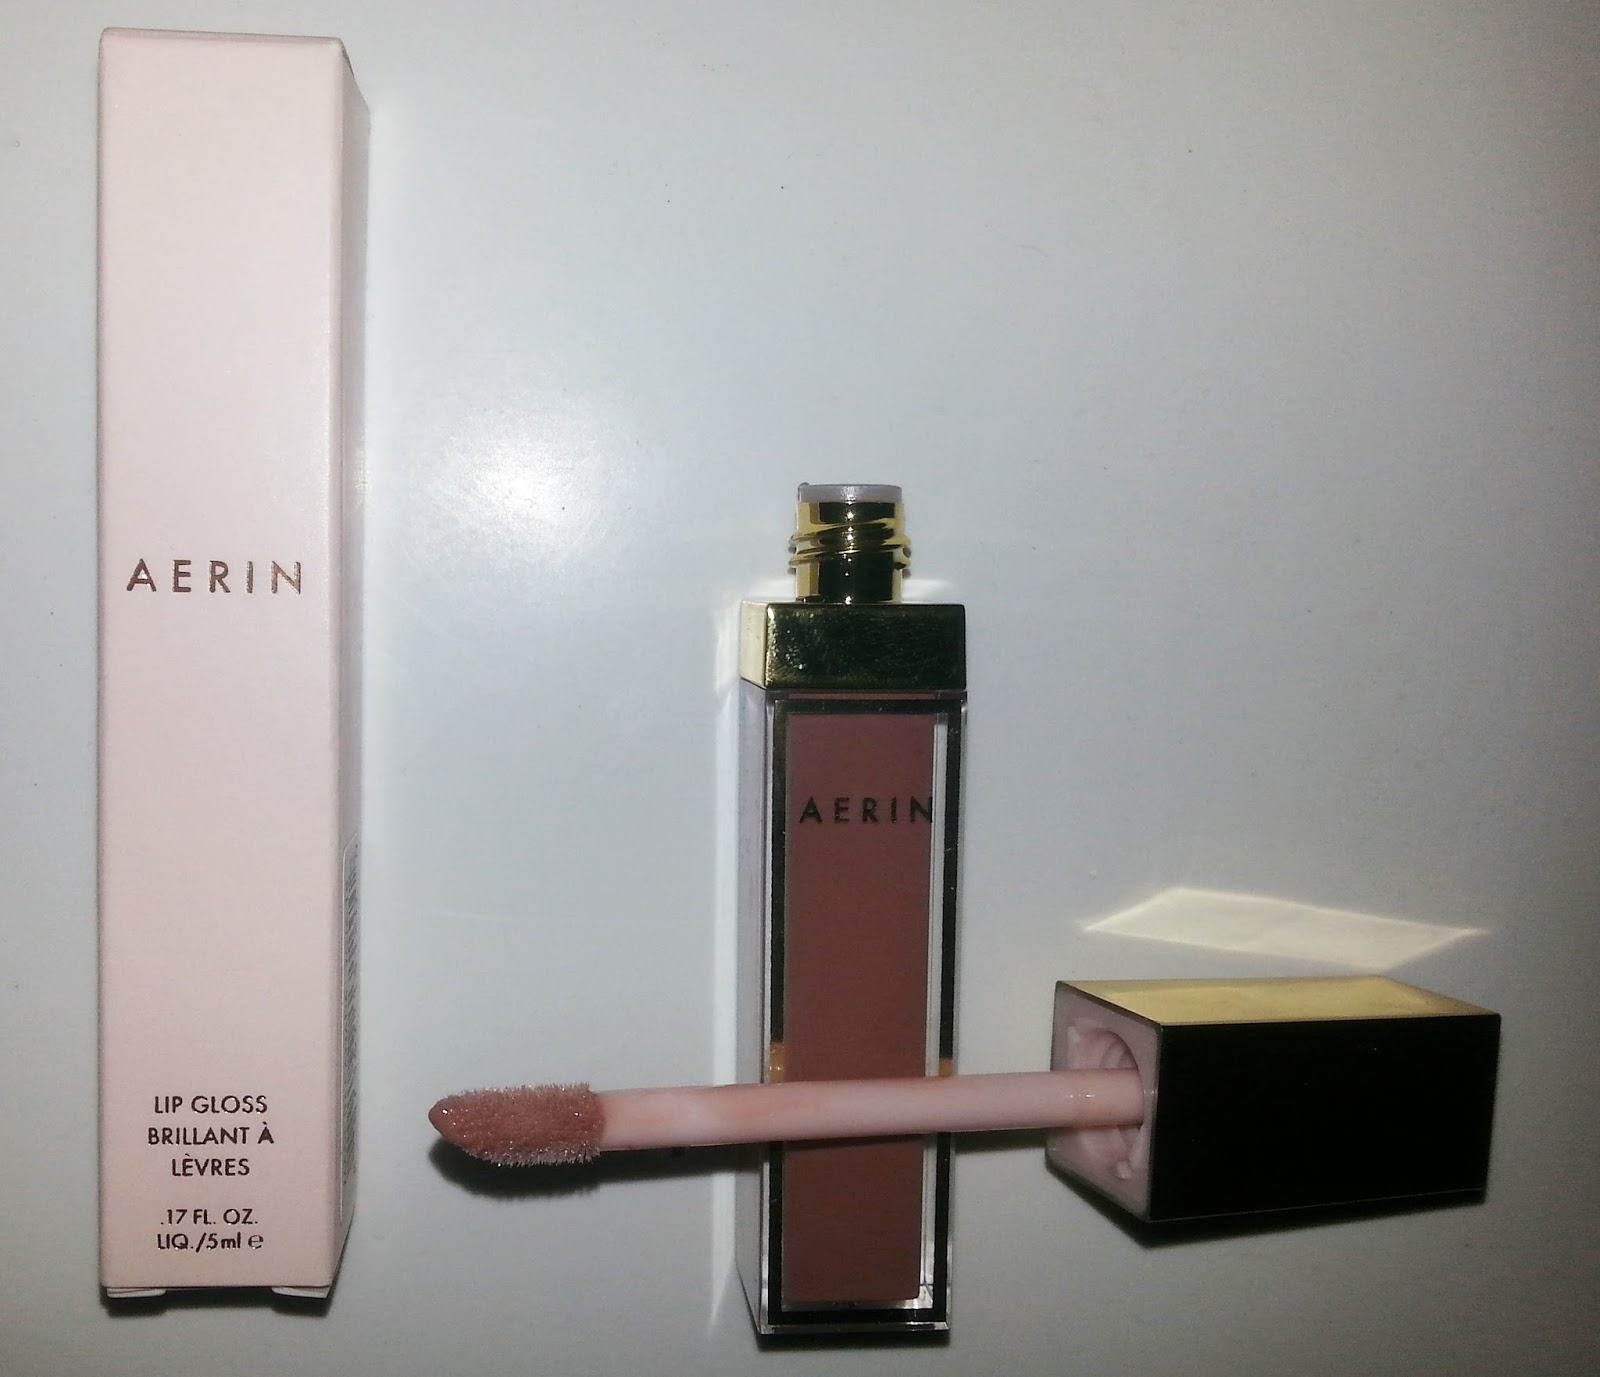 Aerin Lip Gloss